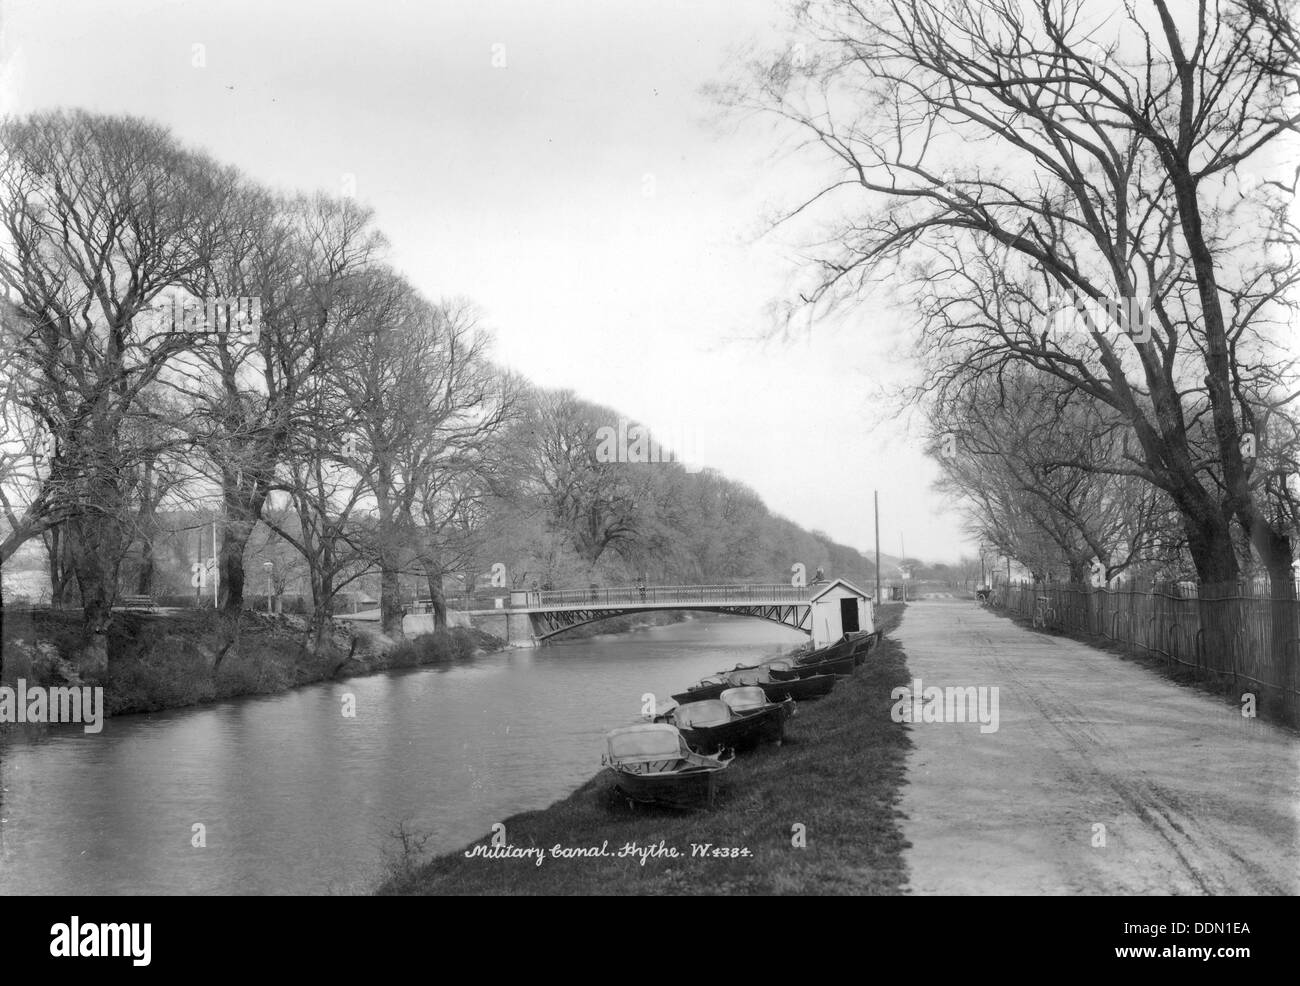 Military Canal, Kent, 1890-1910. - Stock Image